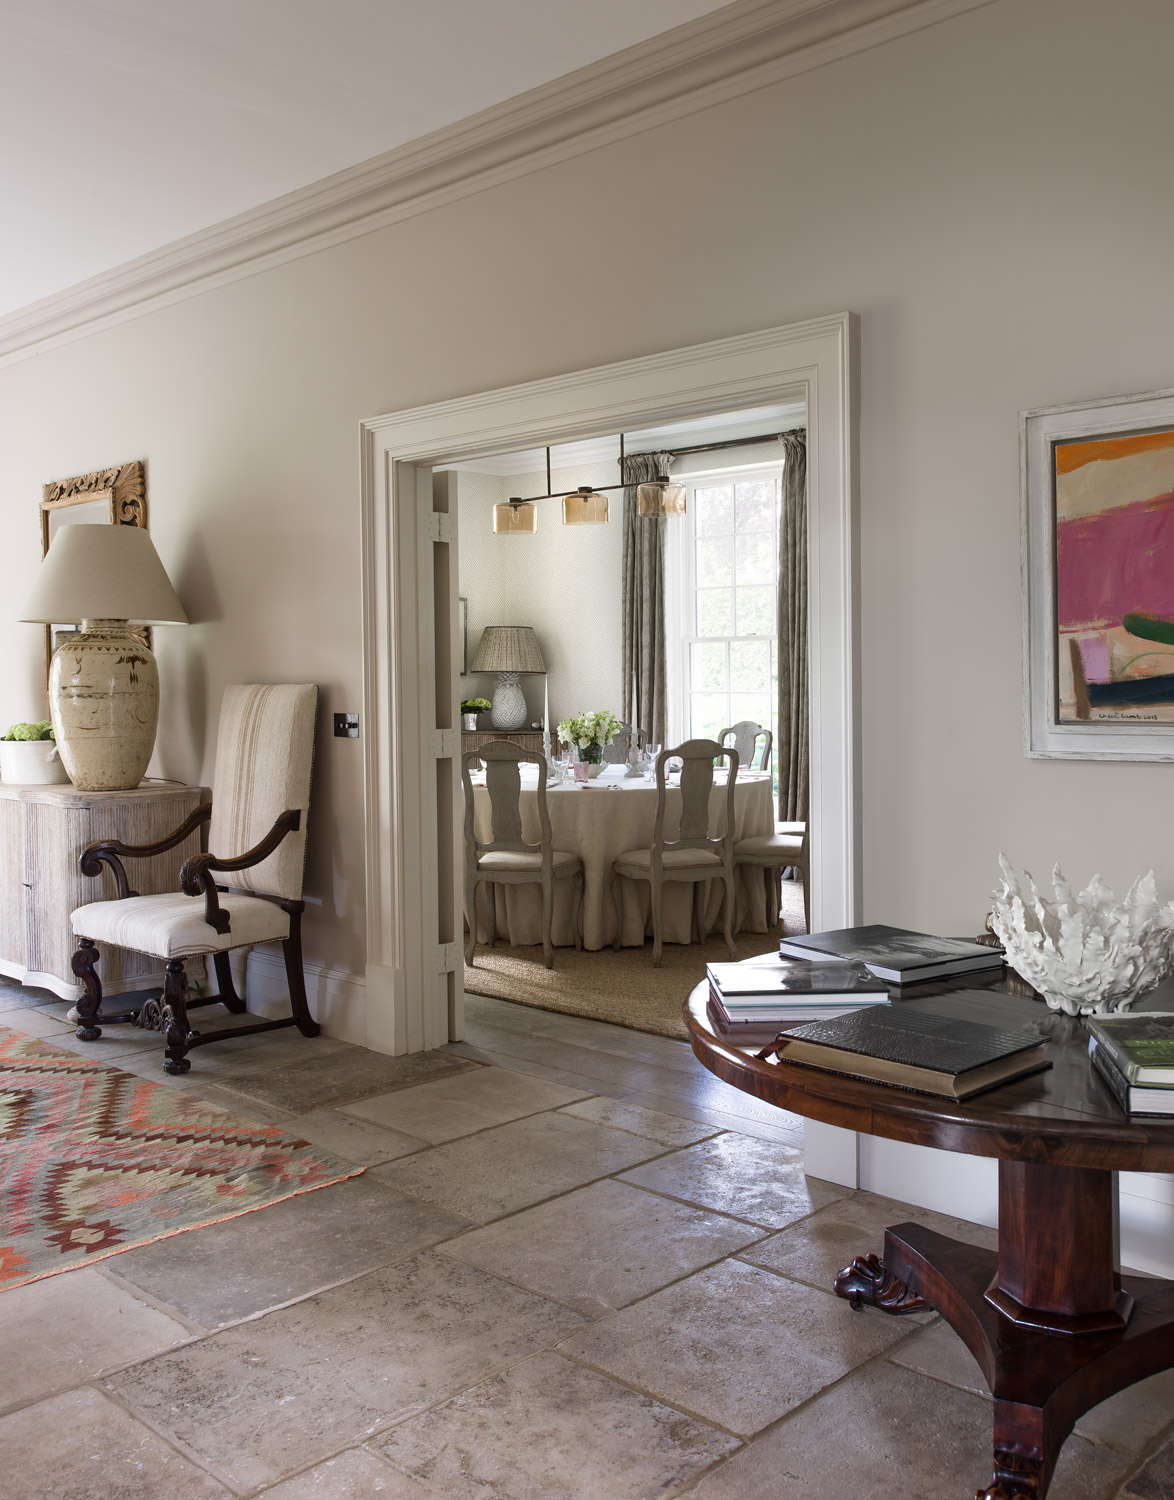 Hall view – interior design by Eadie & Crole